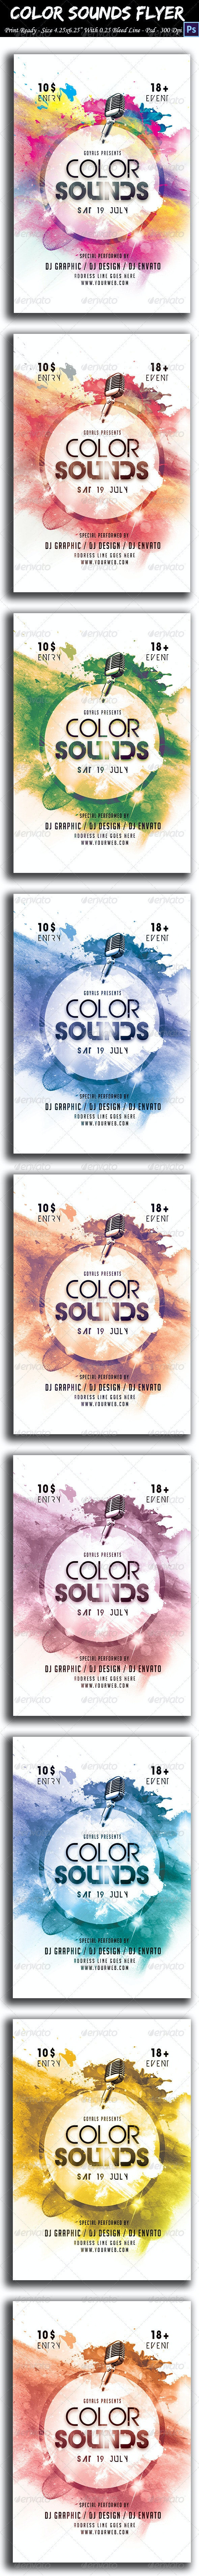 Color Sounds Flyer - Clubs & Parties Events